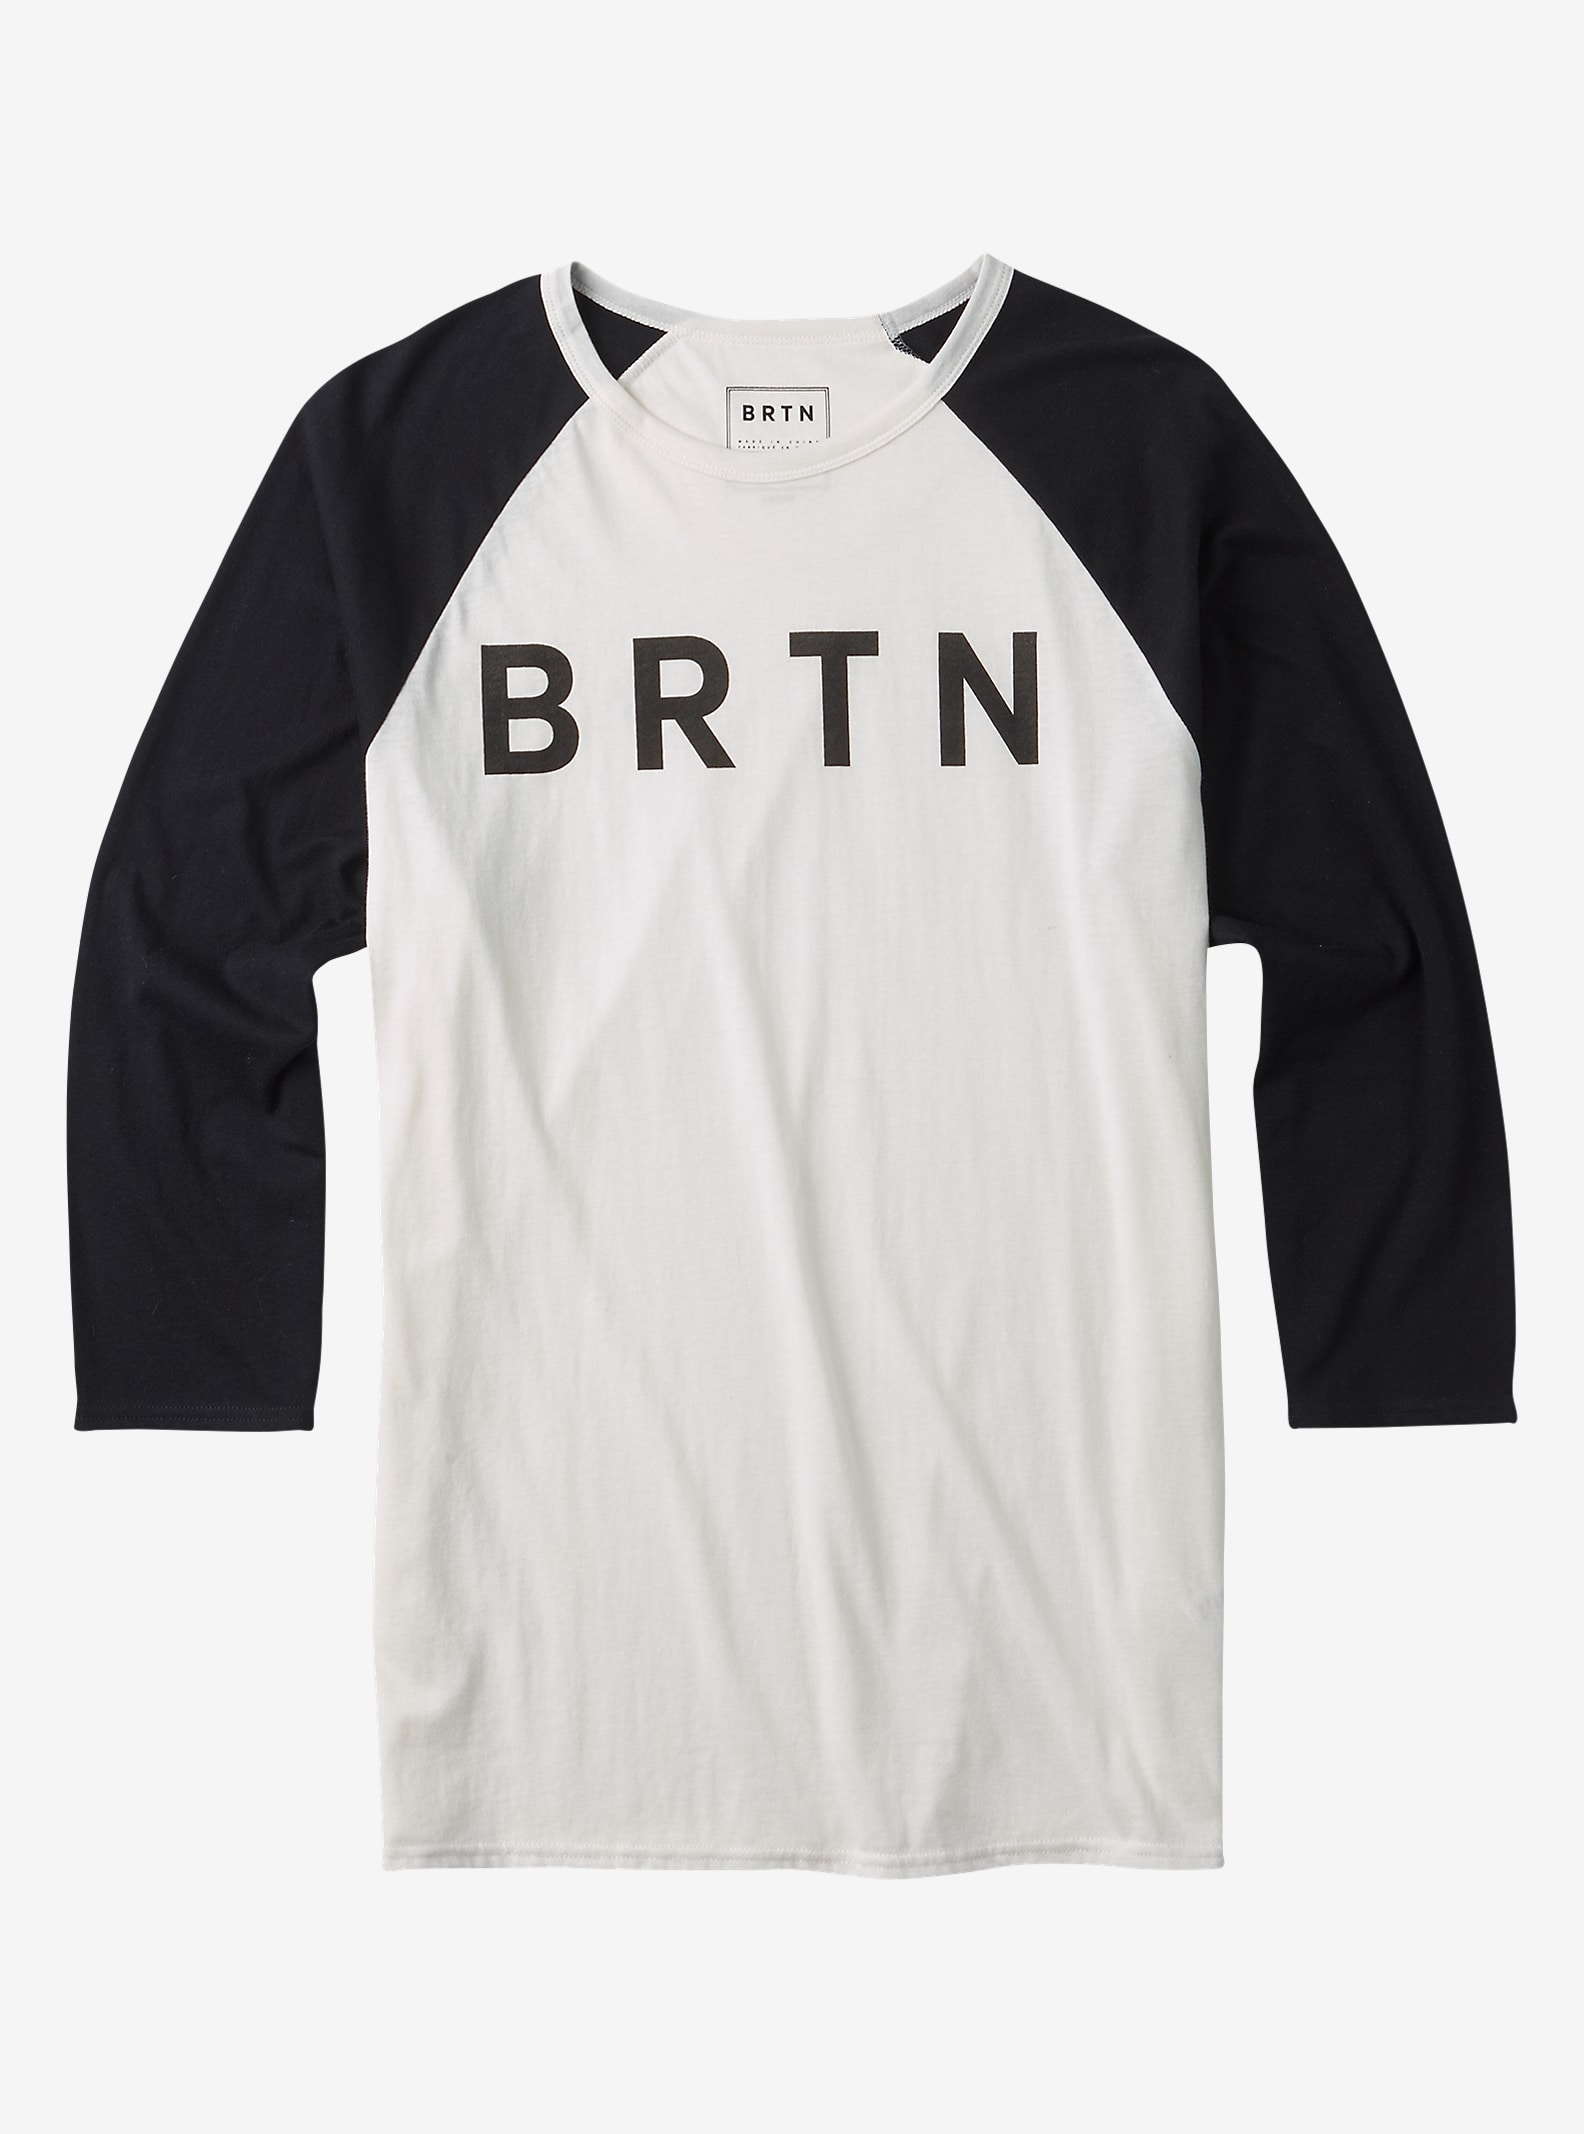 Burton BRTN Raglan Shirt shown in Stout White